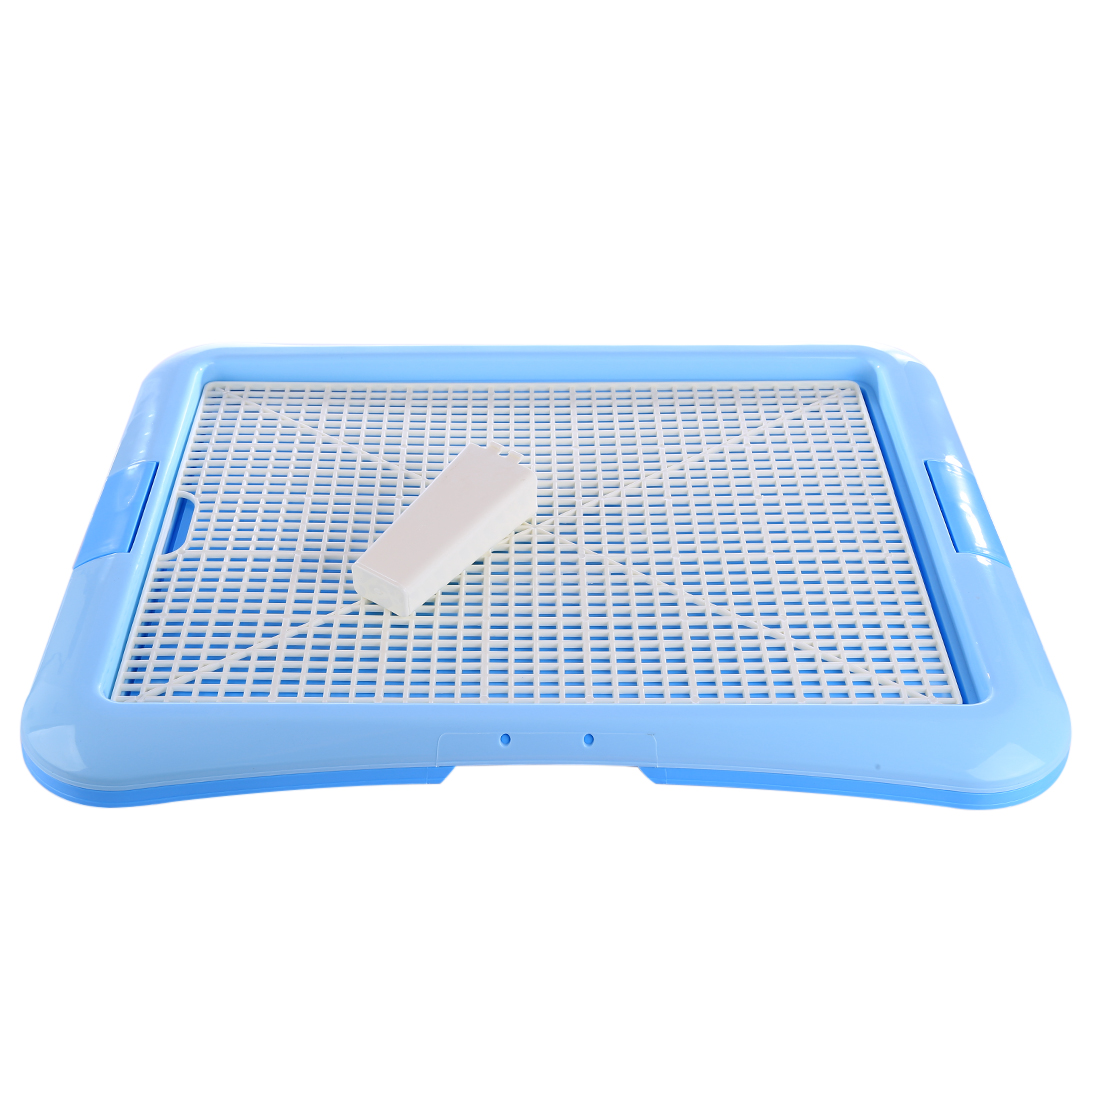 Dog Cat Pet Portable Flat Grid Dog Cat Toilet Tray Pet Urinal With Column For Pee Training Puppy Kitten Cleaning Supplies Blue L